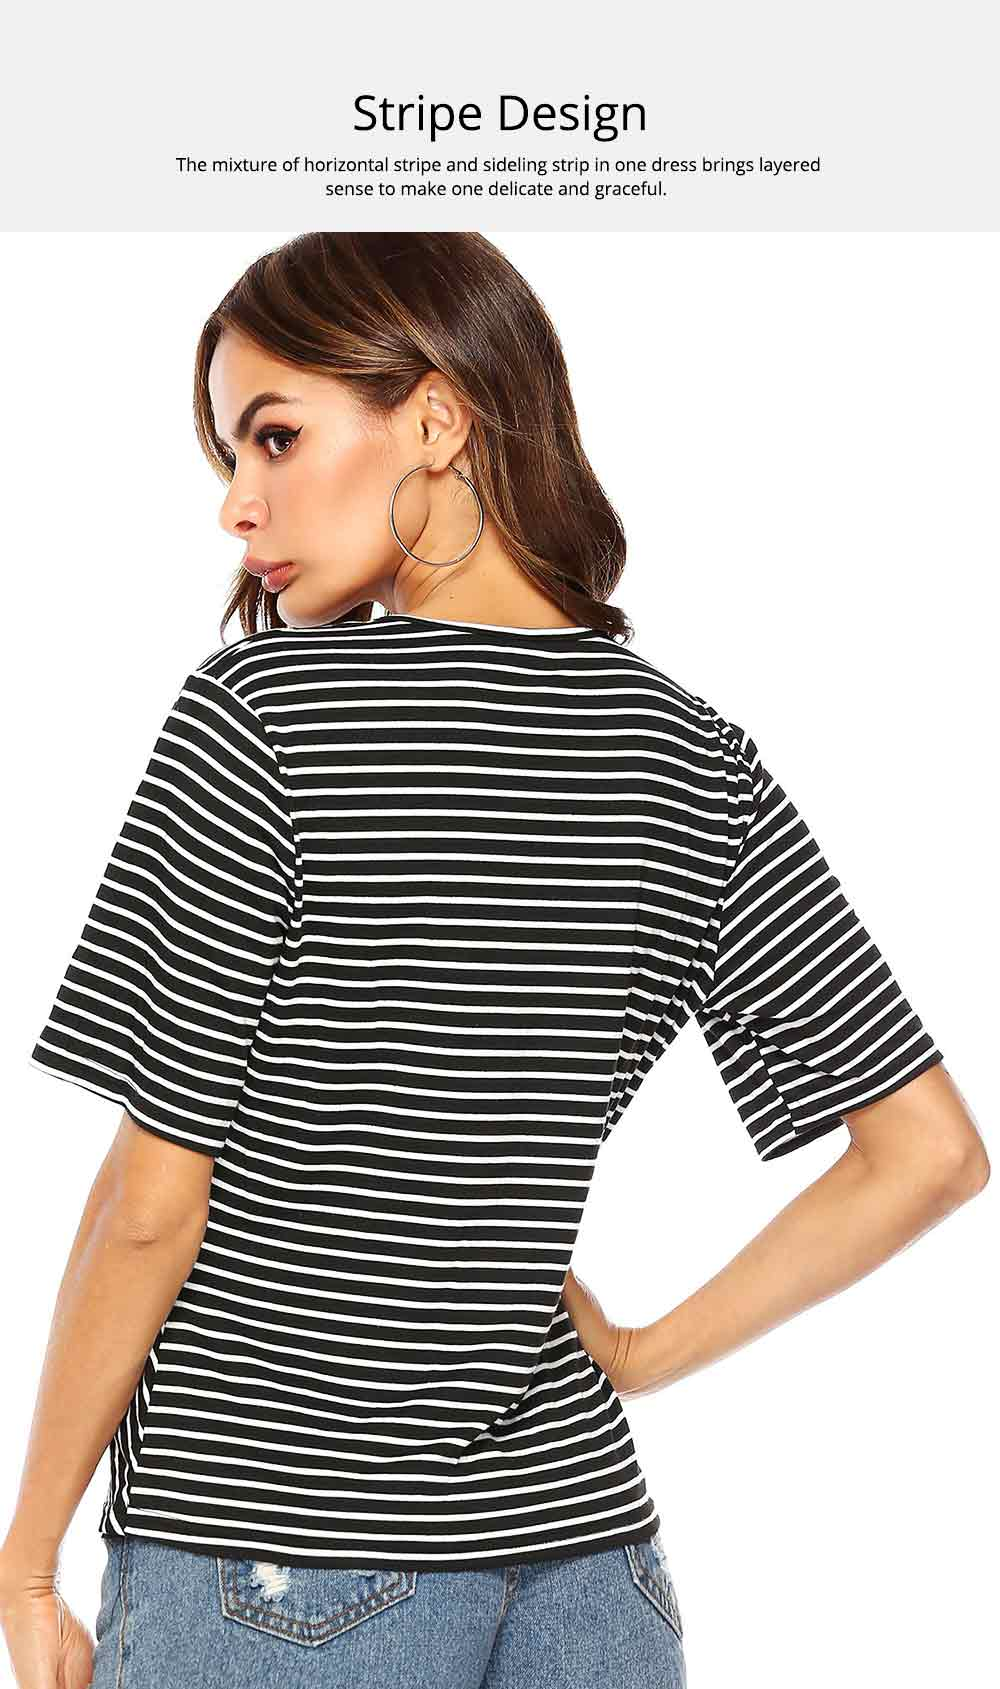 V-Neck Stripe Tees with Adjustable Buckle, Slimmer Waist Middle Sleeve T-shirt for Women Lady 2019 Summer Wear 4